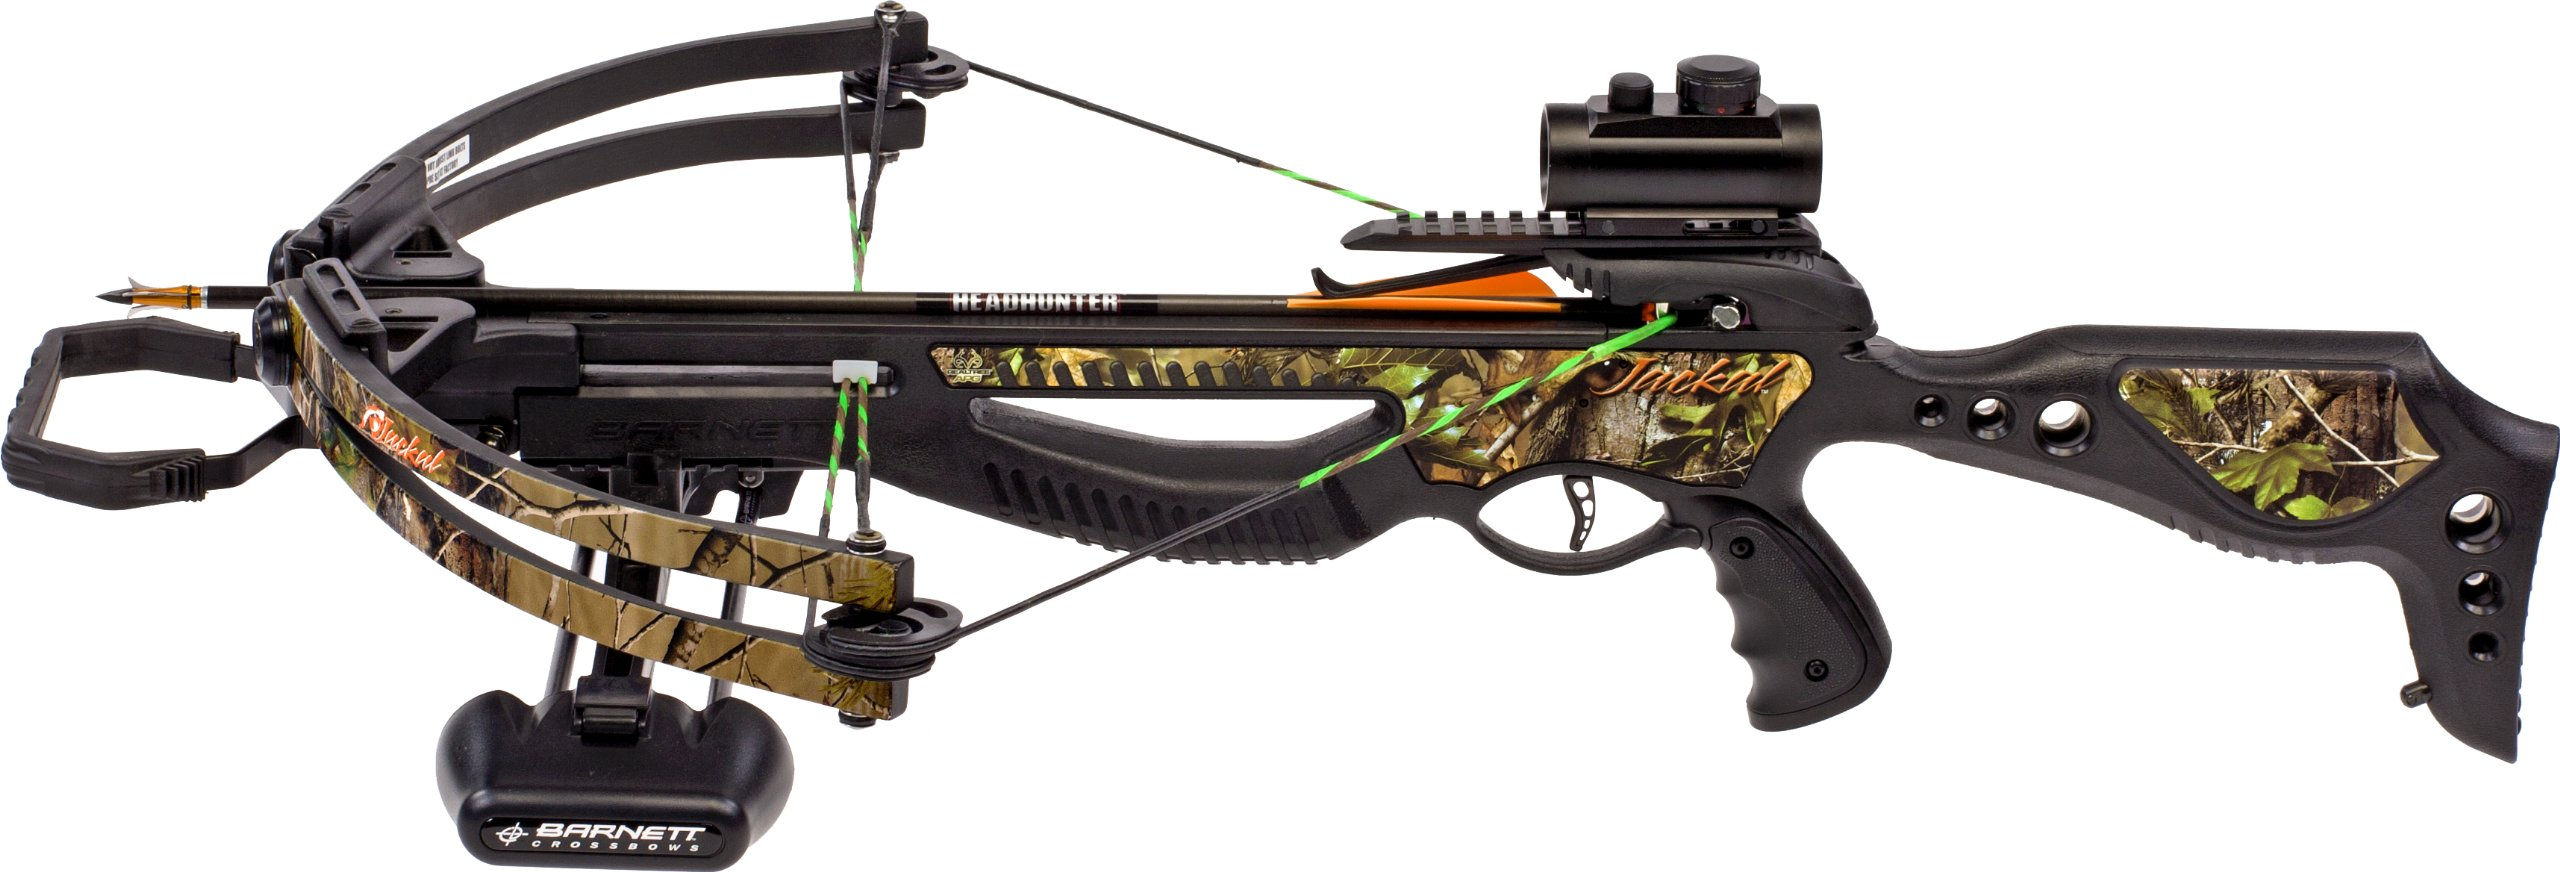 Barnett Jackal Crossbow Package (Quiver, 3 - 20-Inch Arrows and Premium Red Dot Sight) by Barnett (Image #2)